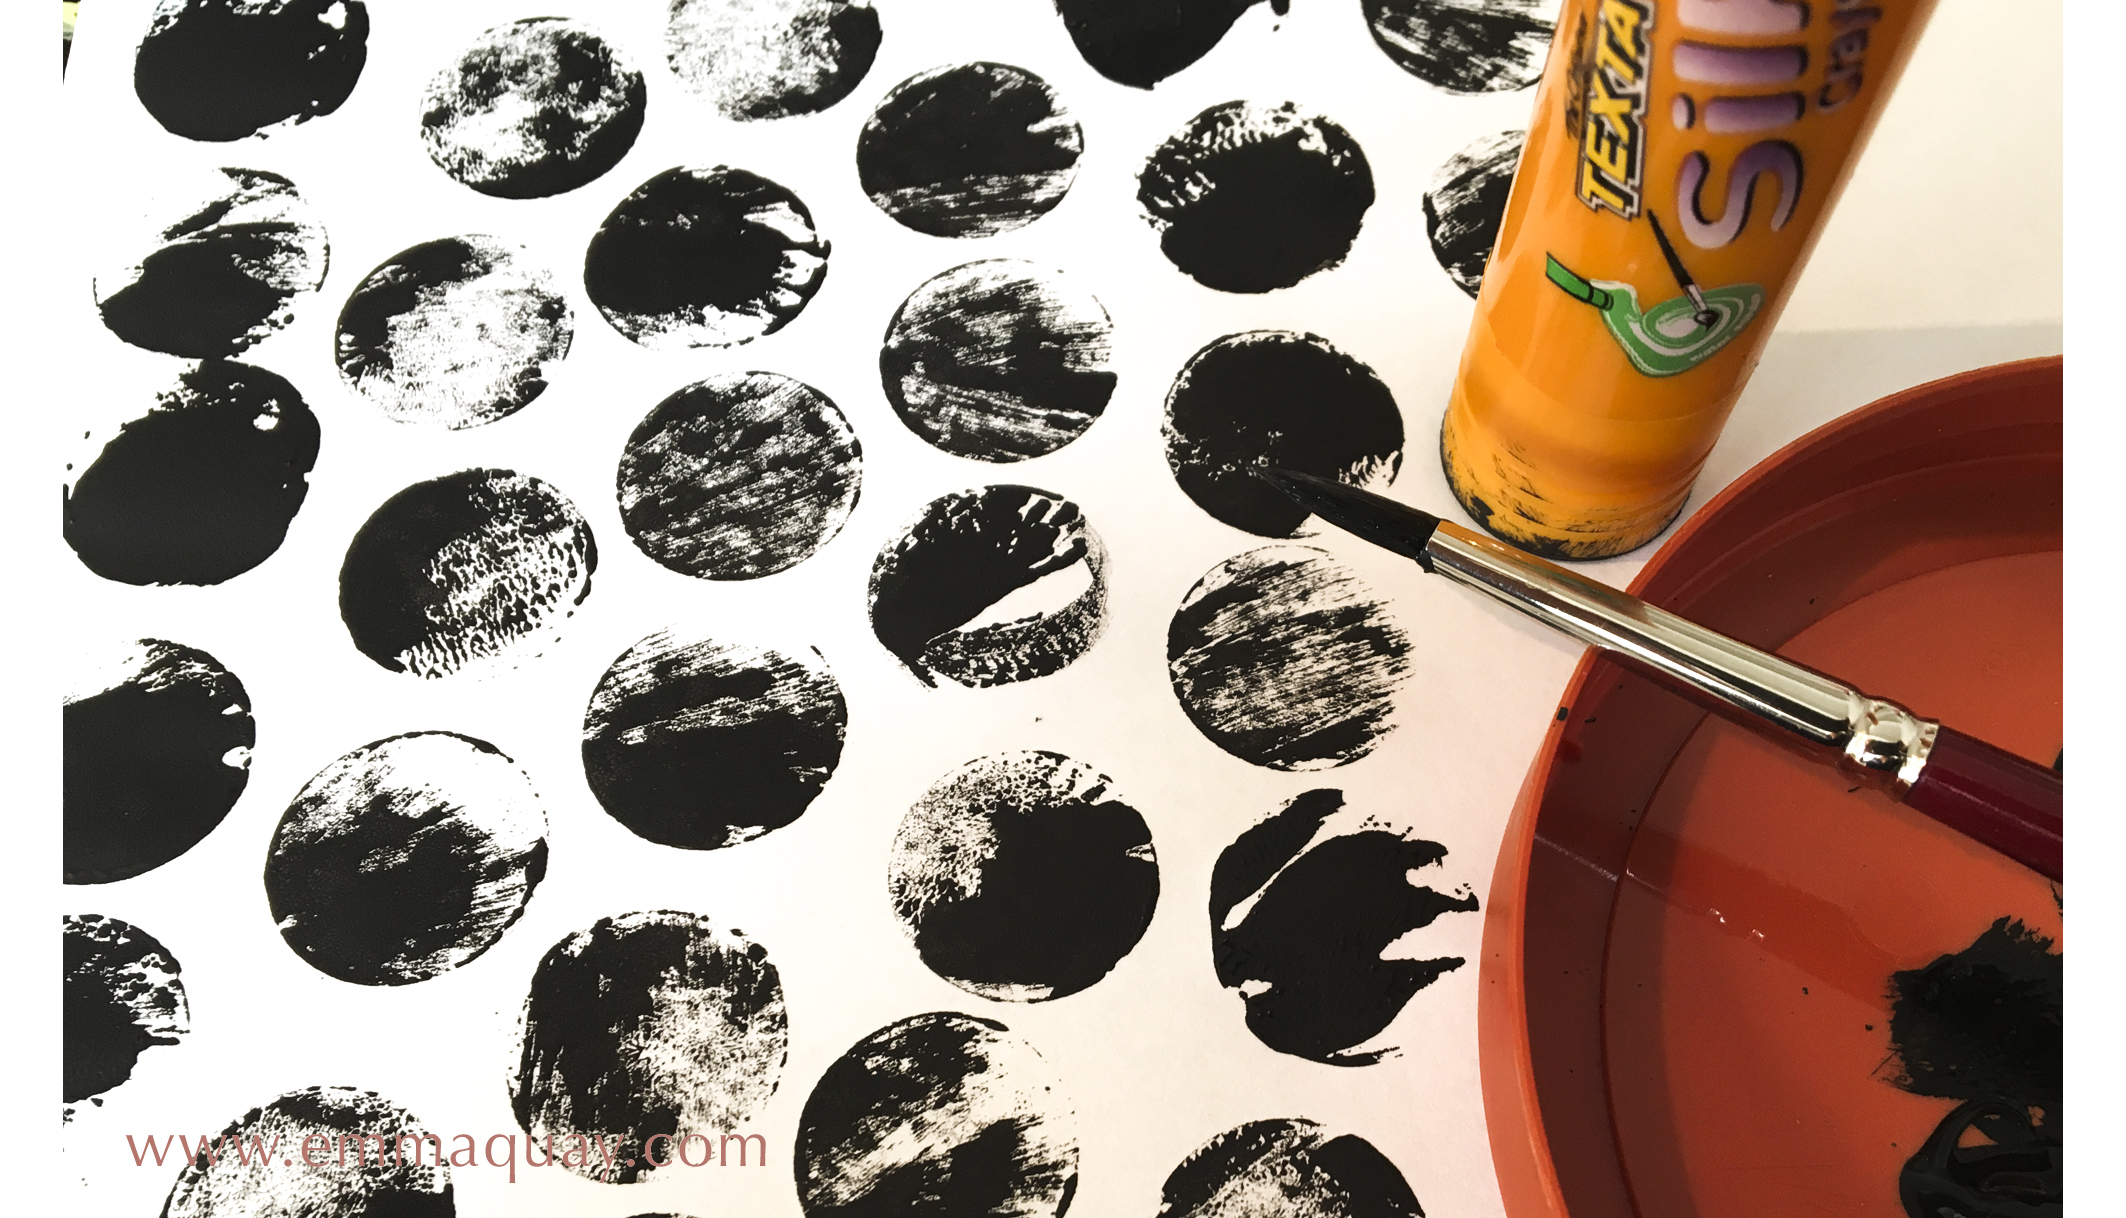 Illustrating MY SUNBEAM BABY - stamping with a lid - www.emmaquay.com